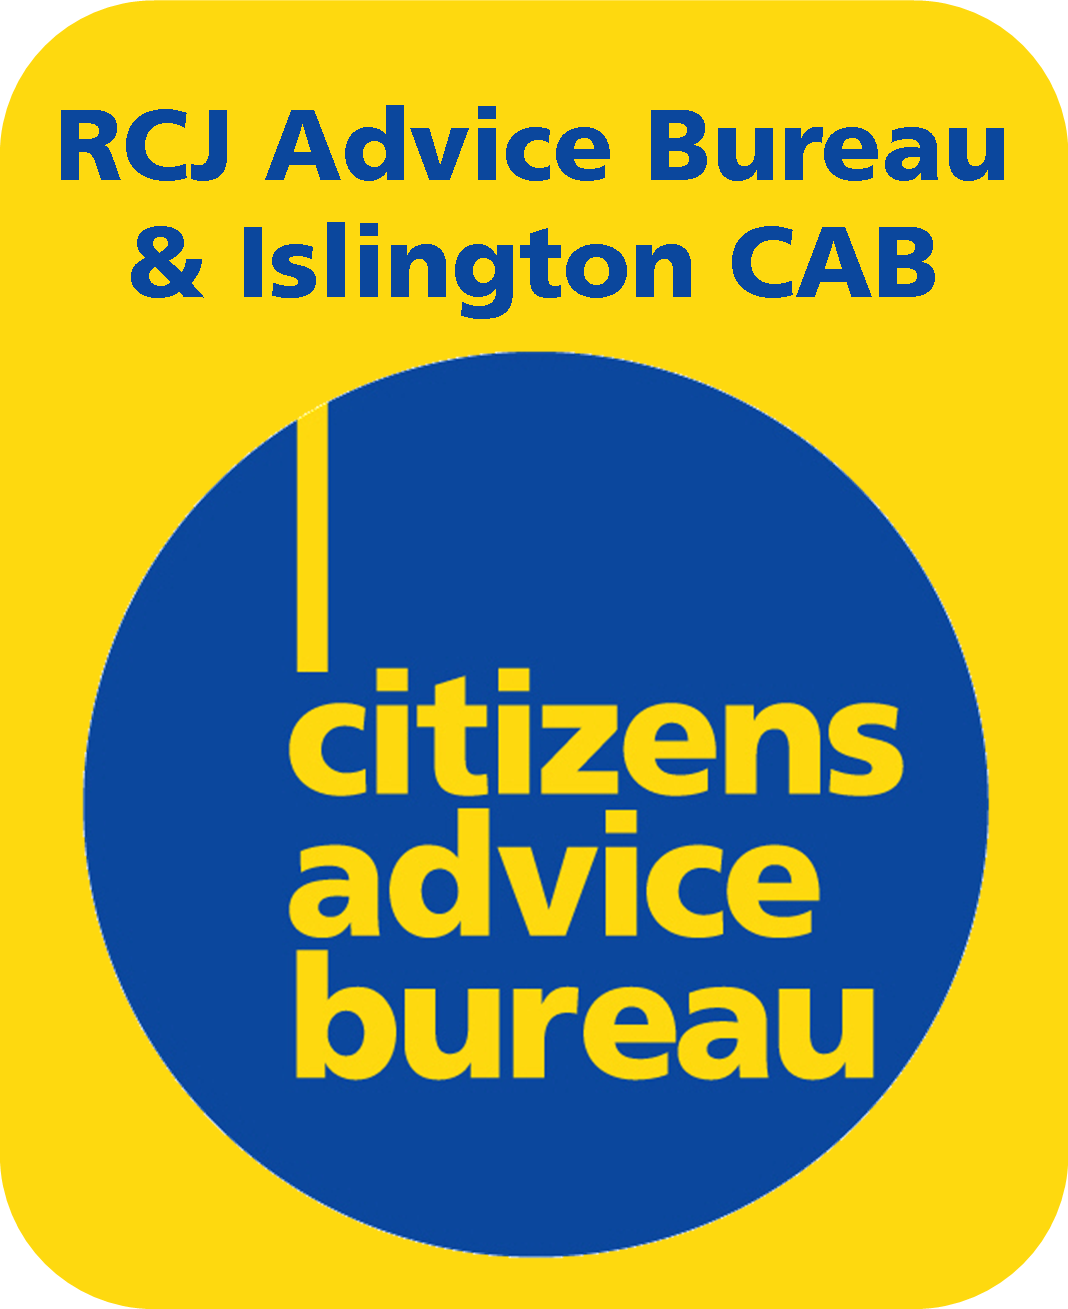 Image of The Royal Courts of Justice Advice Bureau's logo